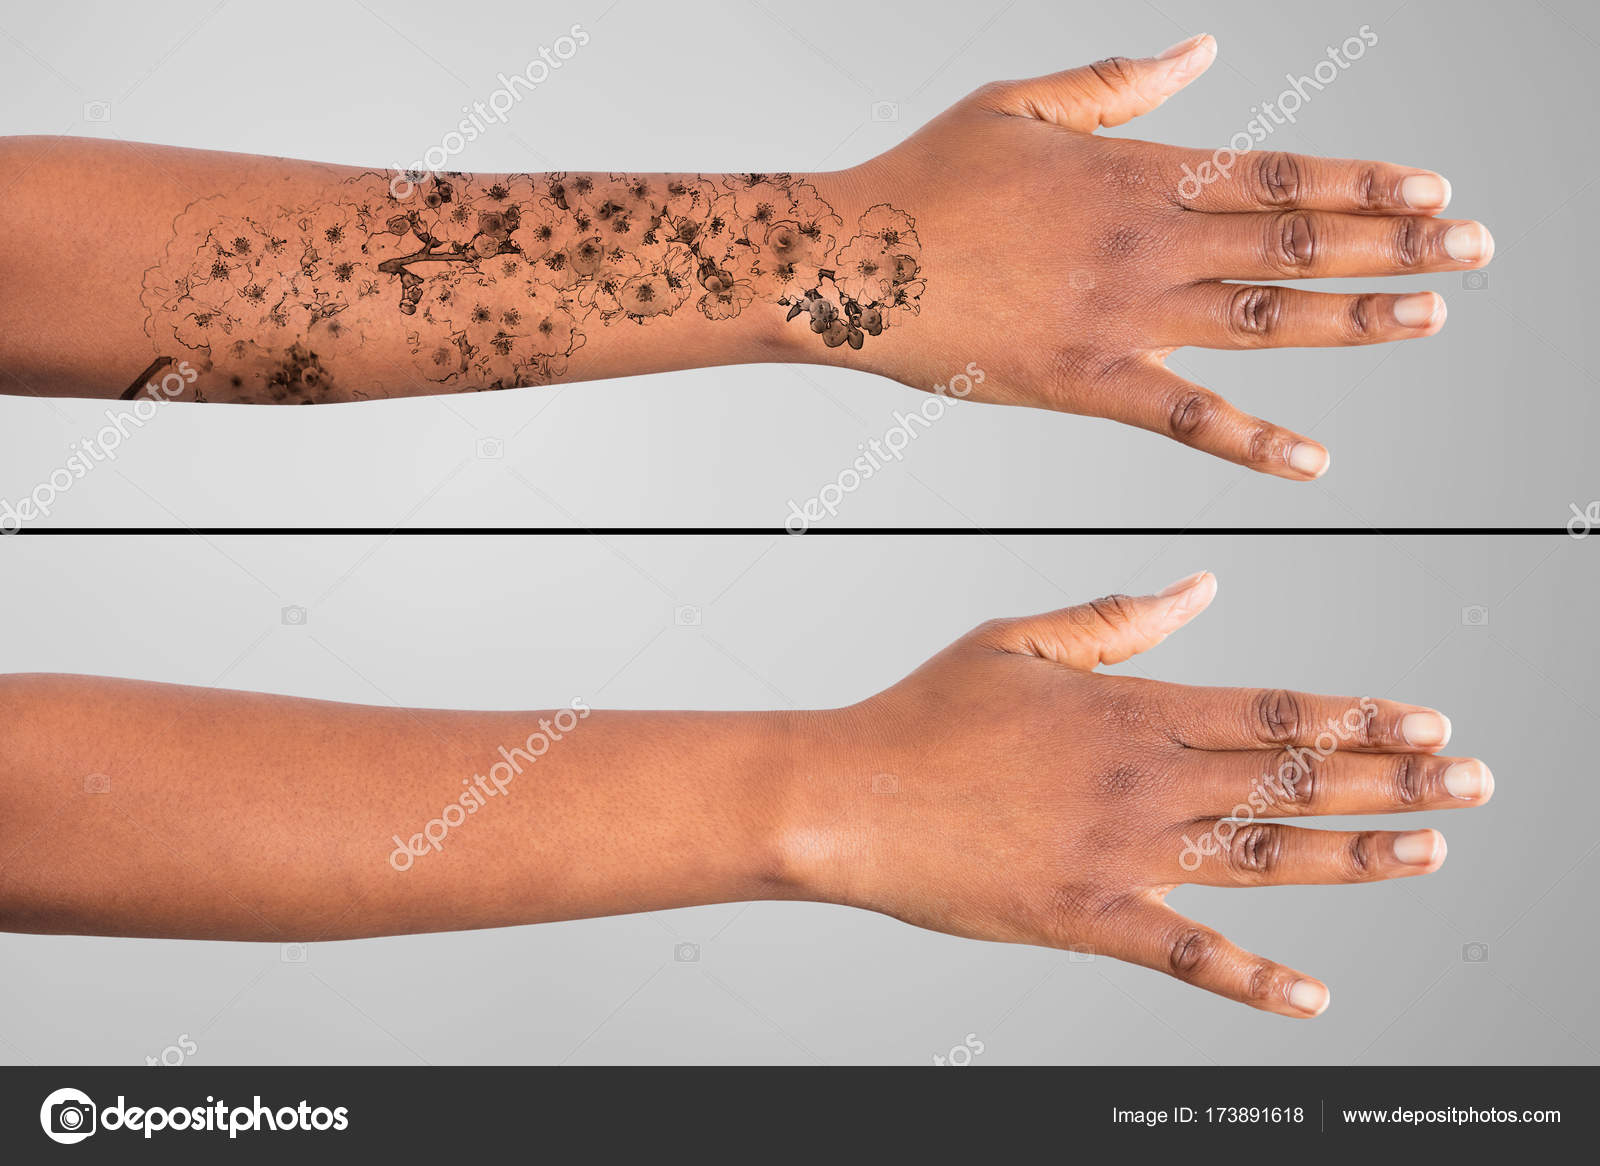 Tattoo Removal On Woman Hands — Stock Photo © AndreyPopov #173891618